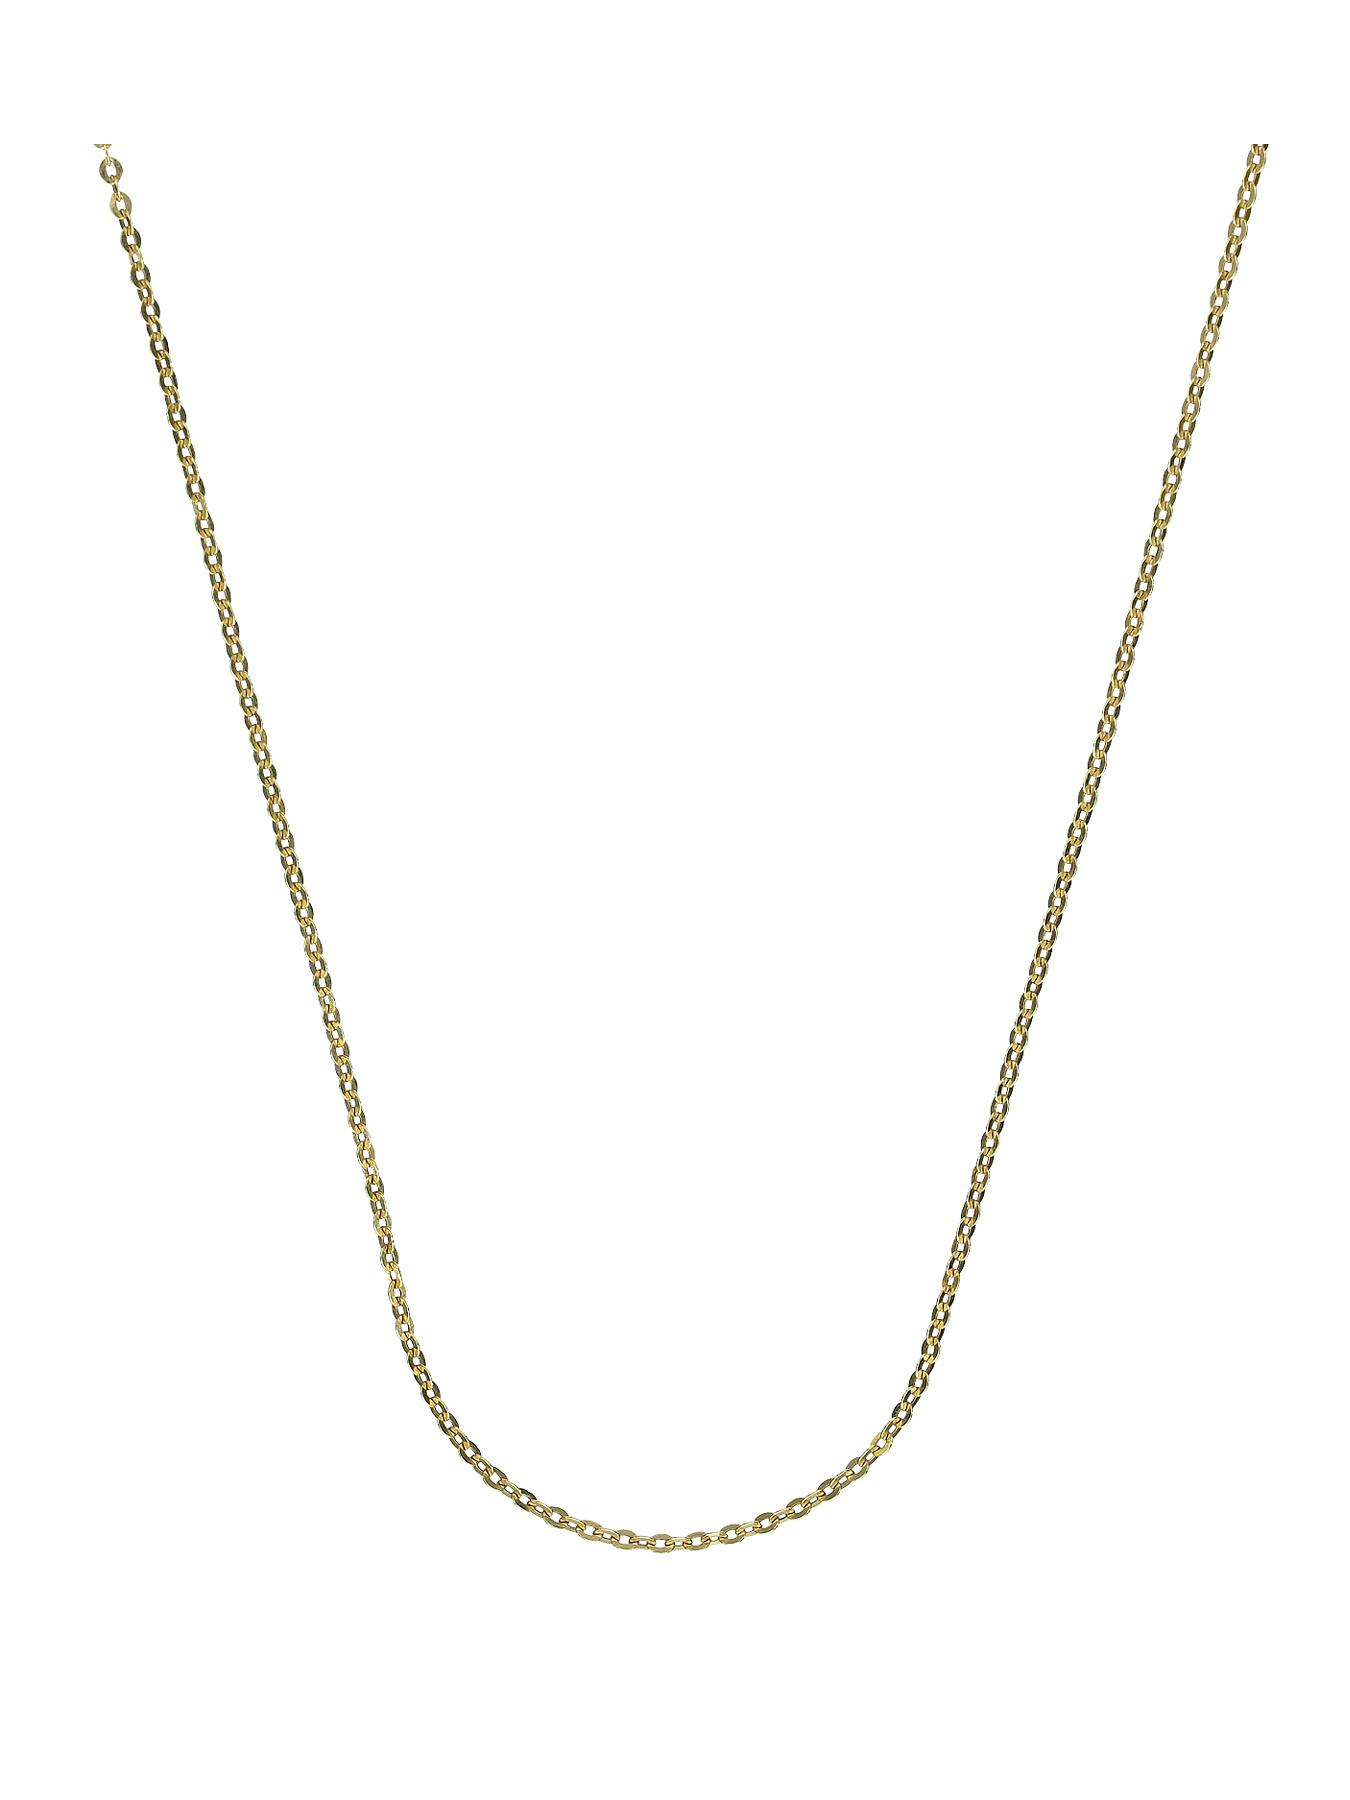 Sterling Silver and 9 Carat Yellow Gold Boned Chain 22 inch